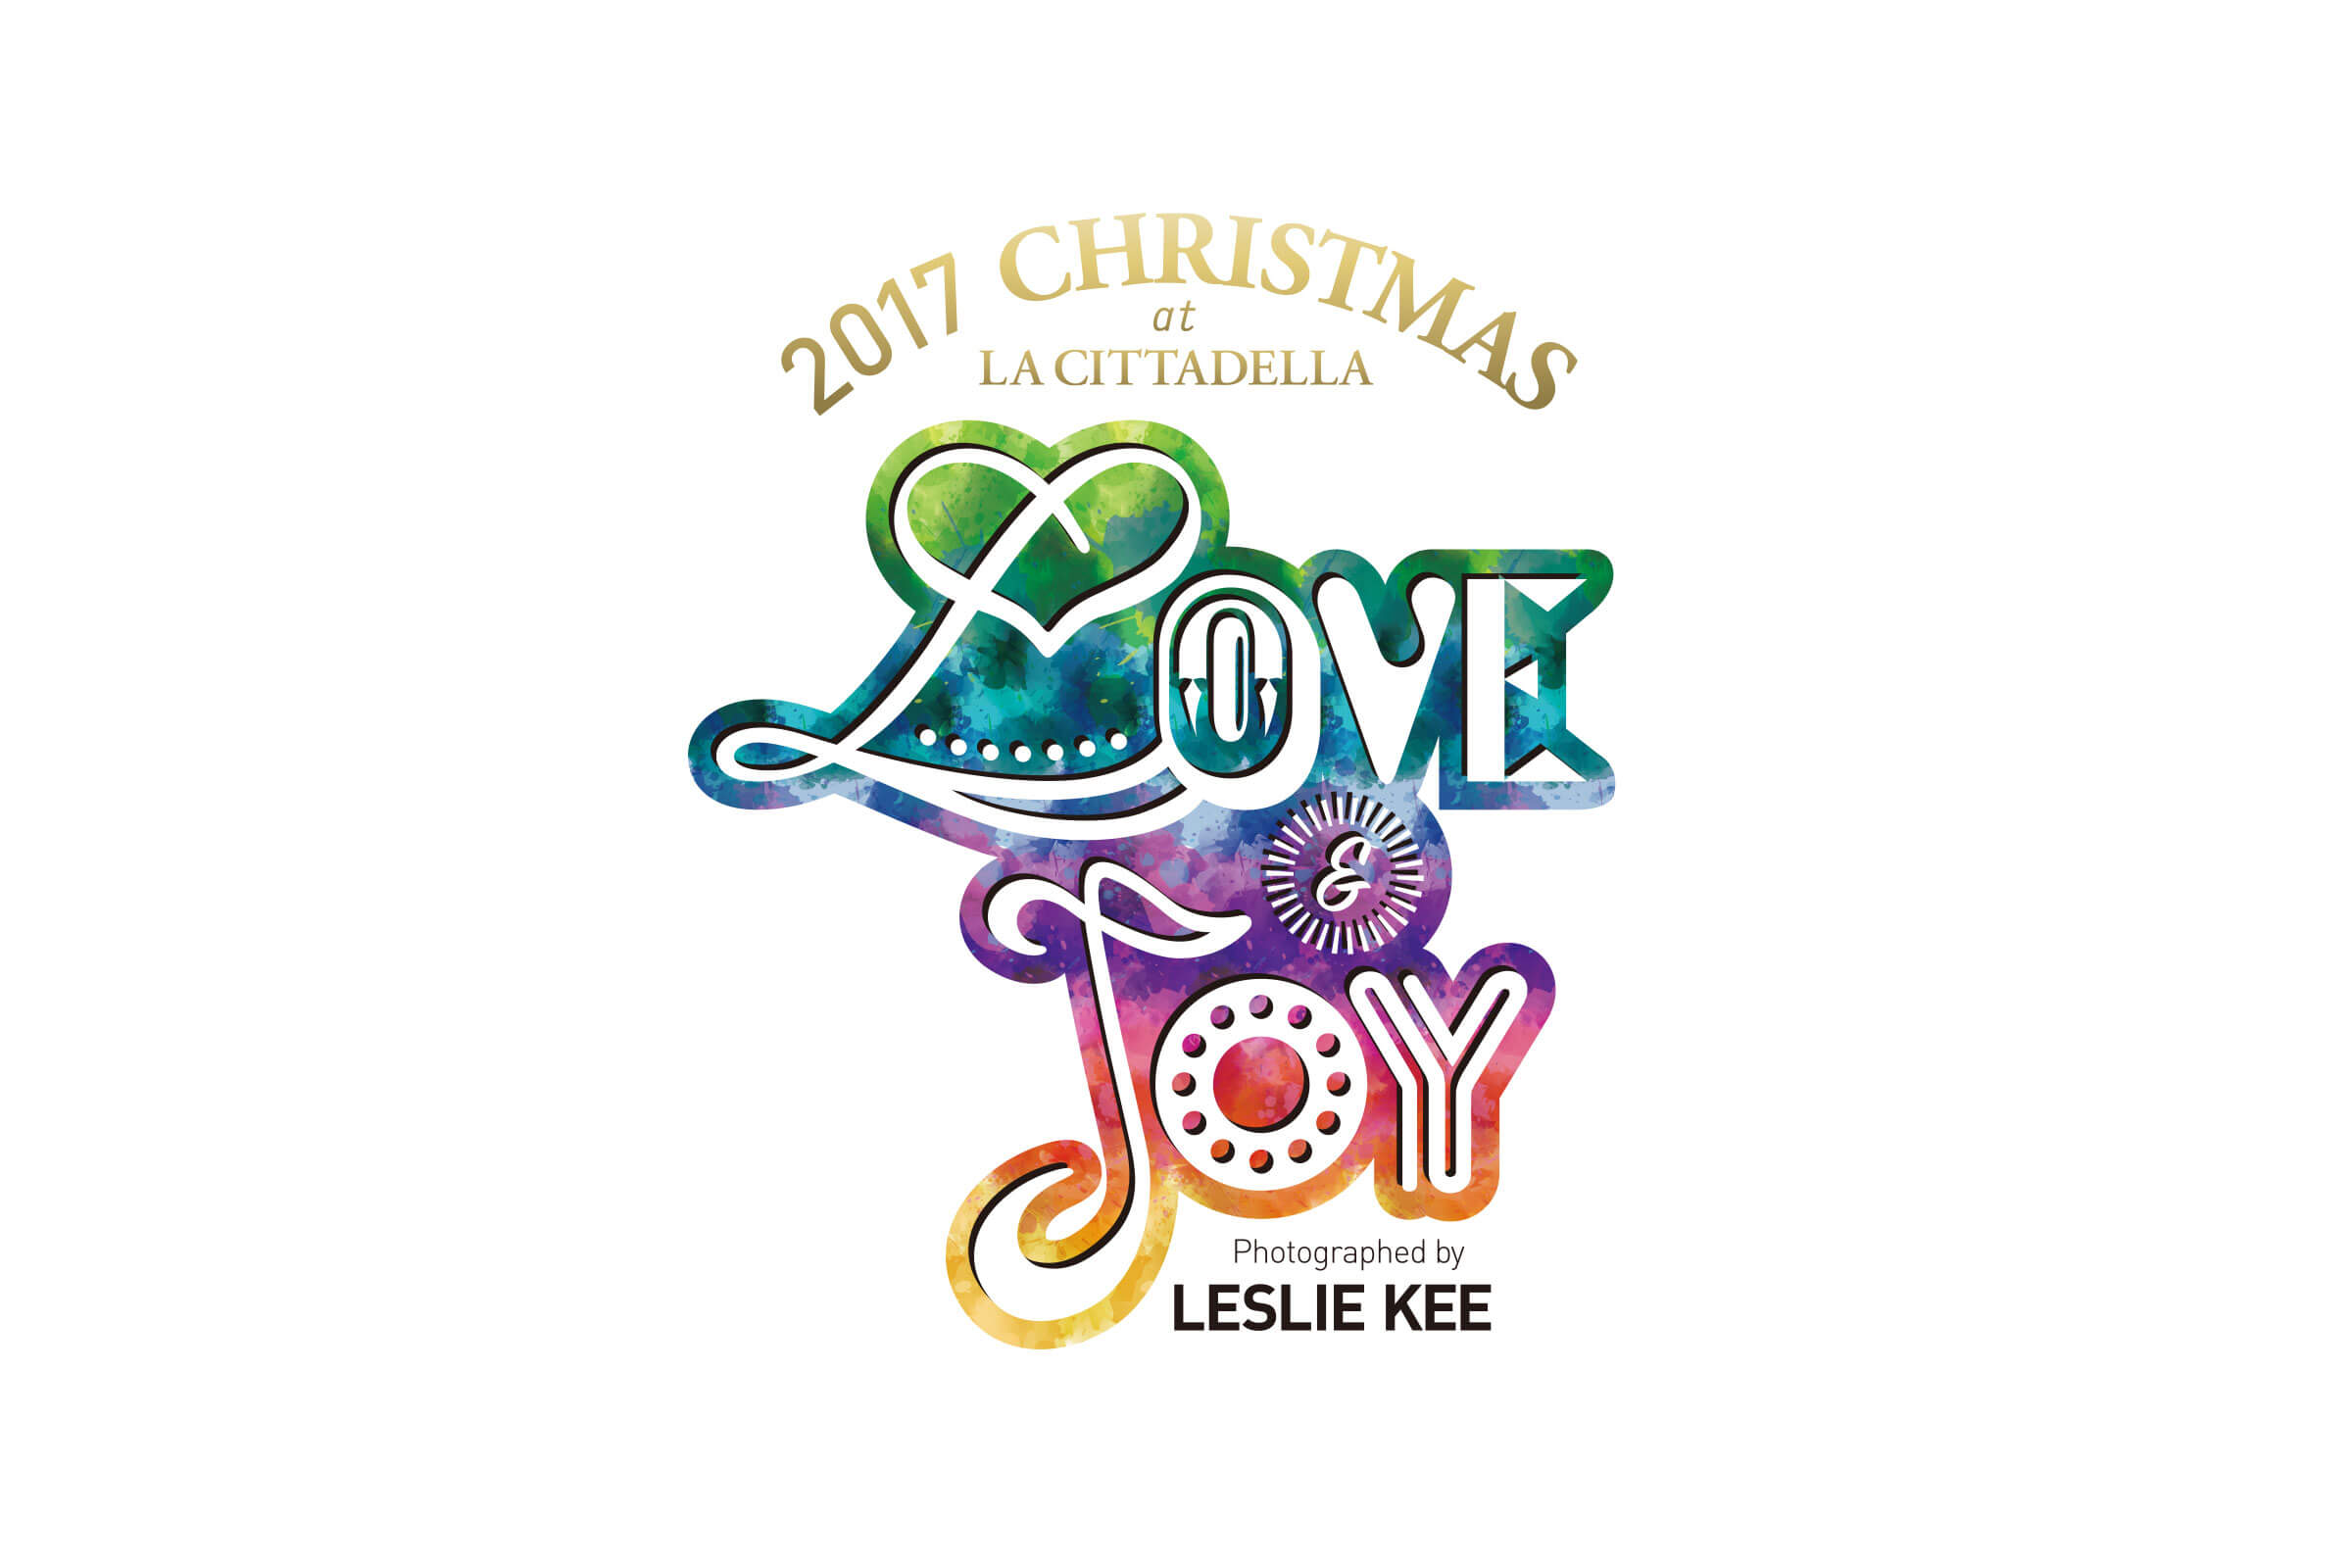 LOVE & JOY Photographed by LESLIE KEE イベントロゴ パターン2